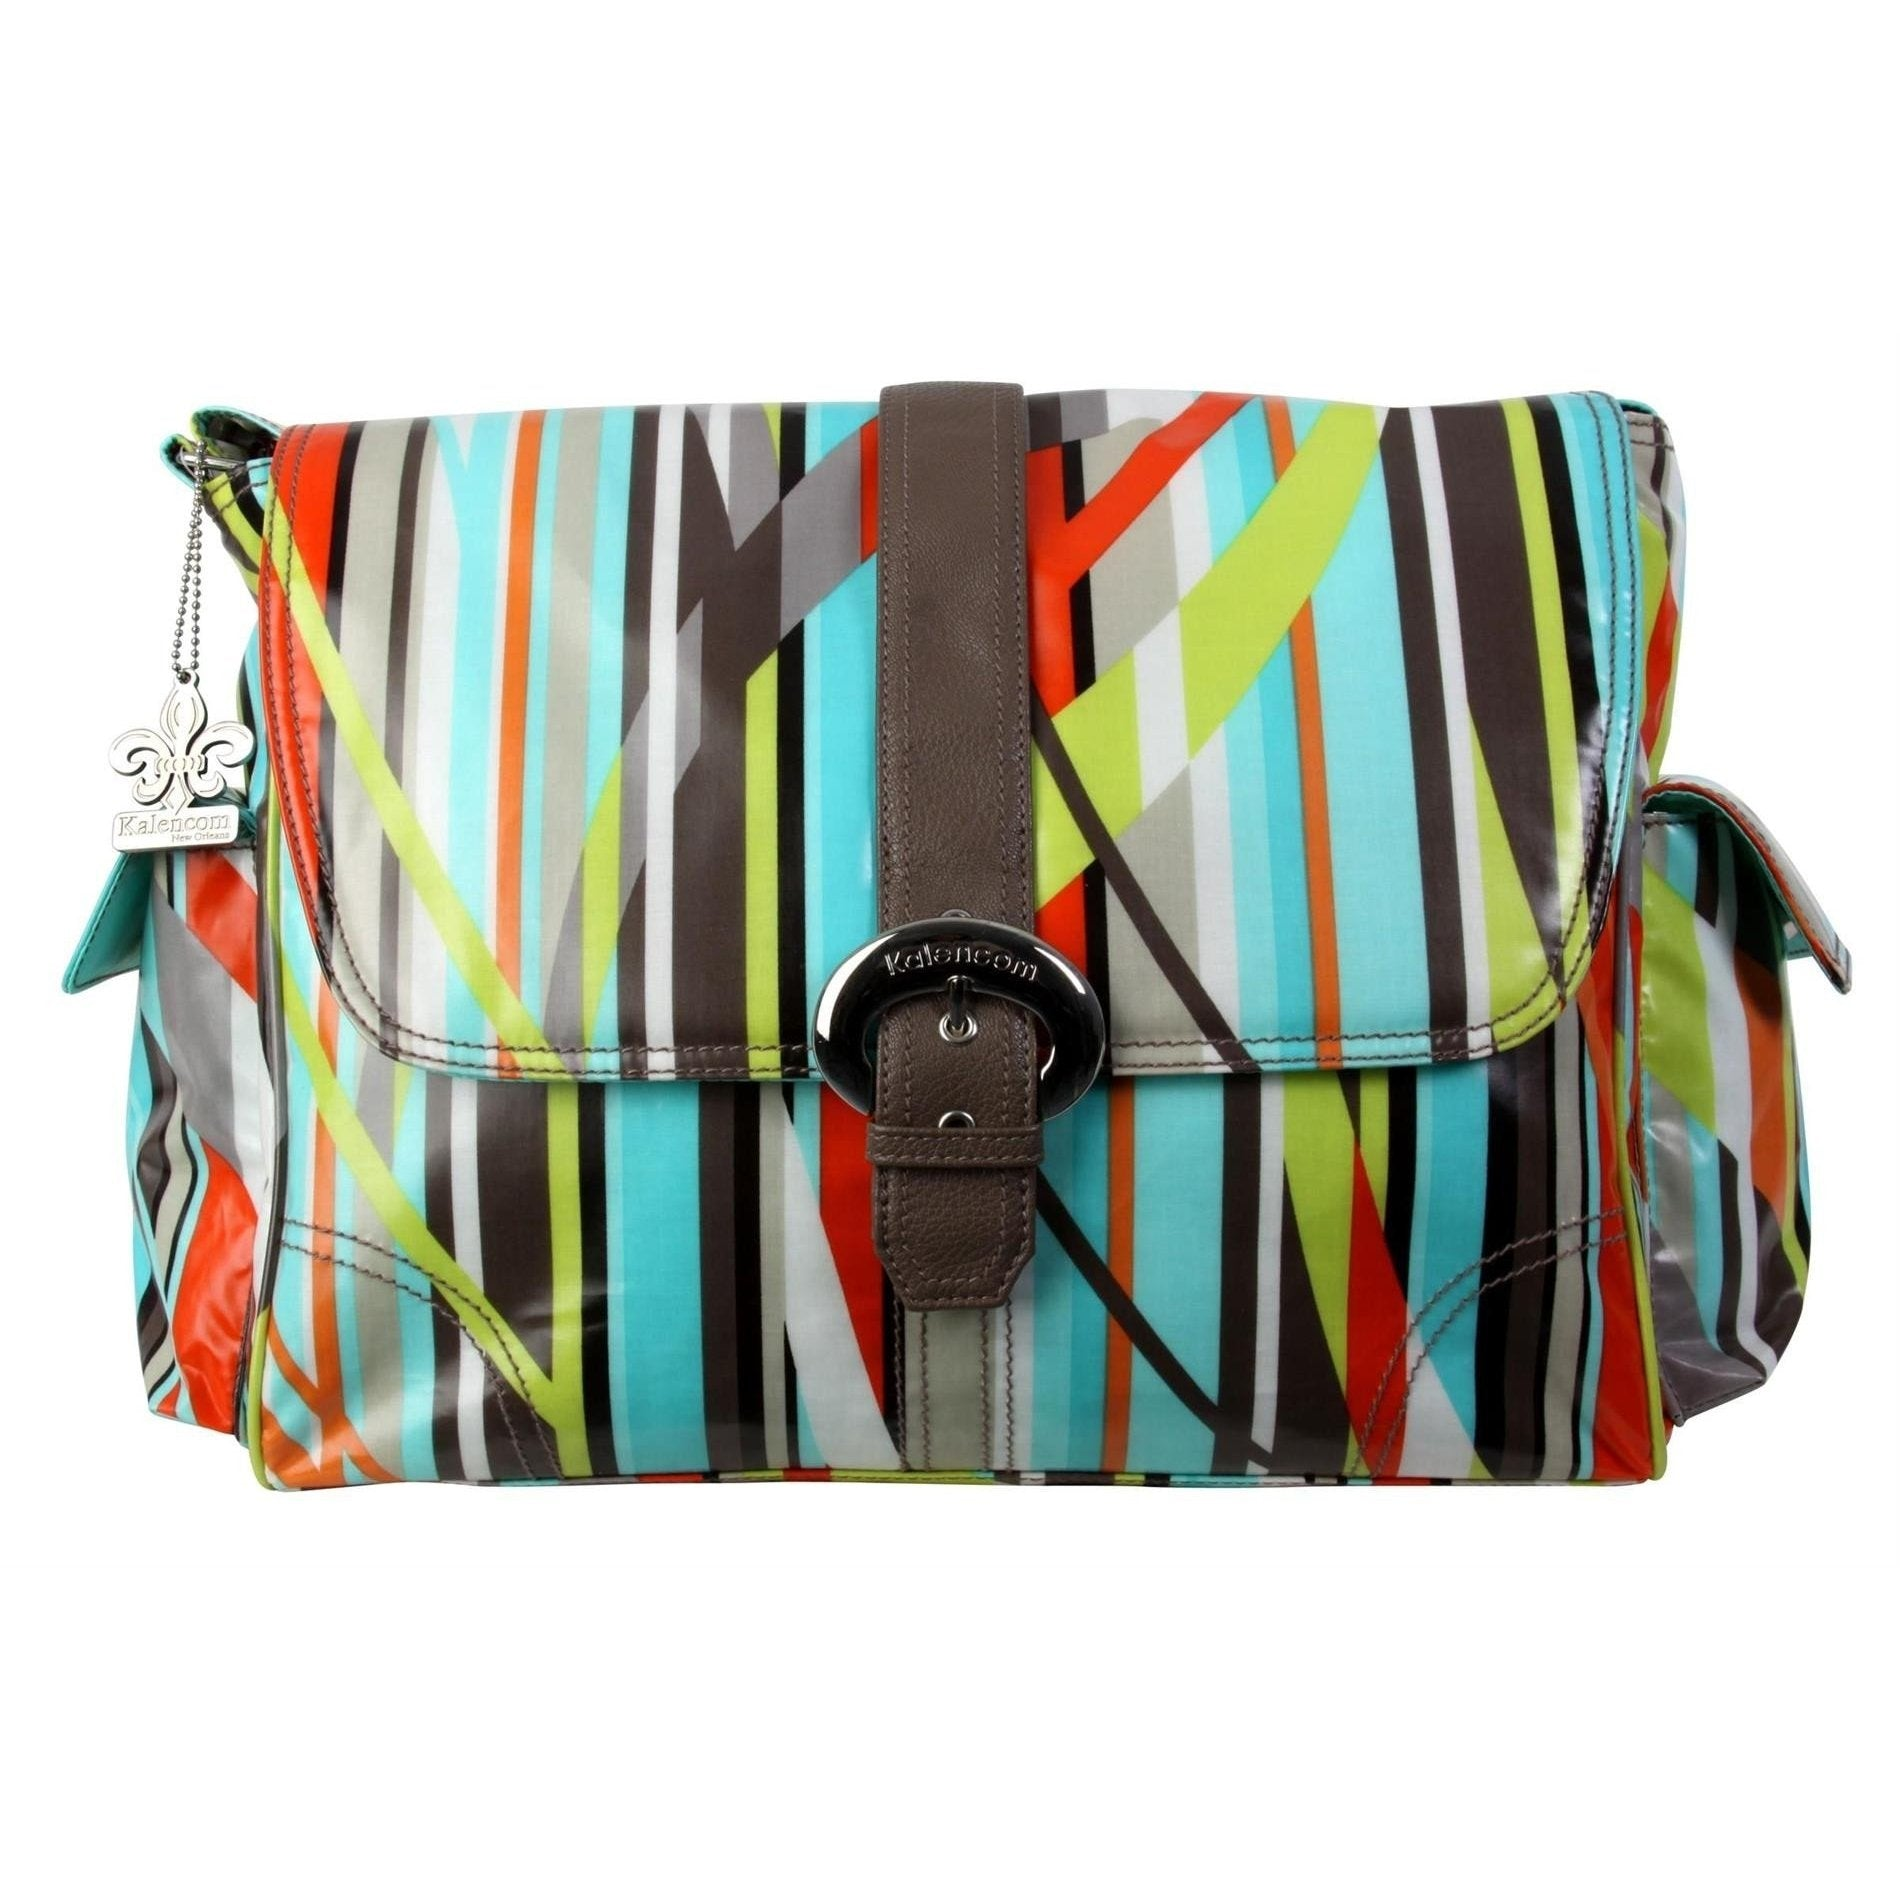 Free Style Laminated Buckle Diaper Bag | Style 2960 - Kalencom-Diaper Bags-Jack and Jill Boutique